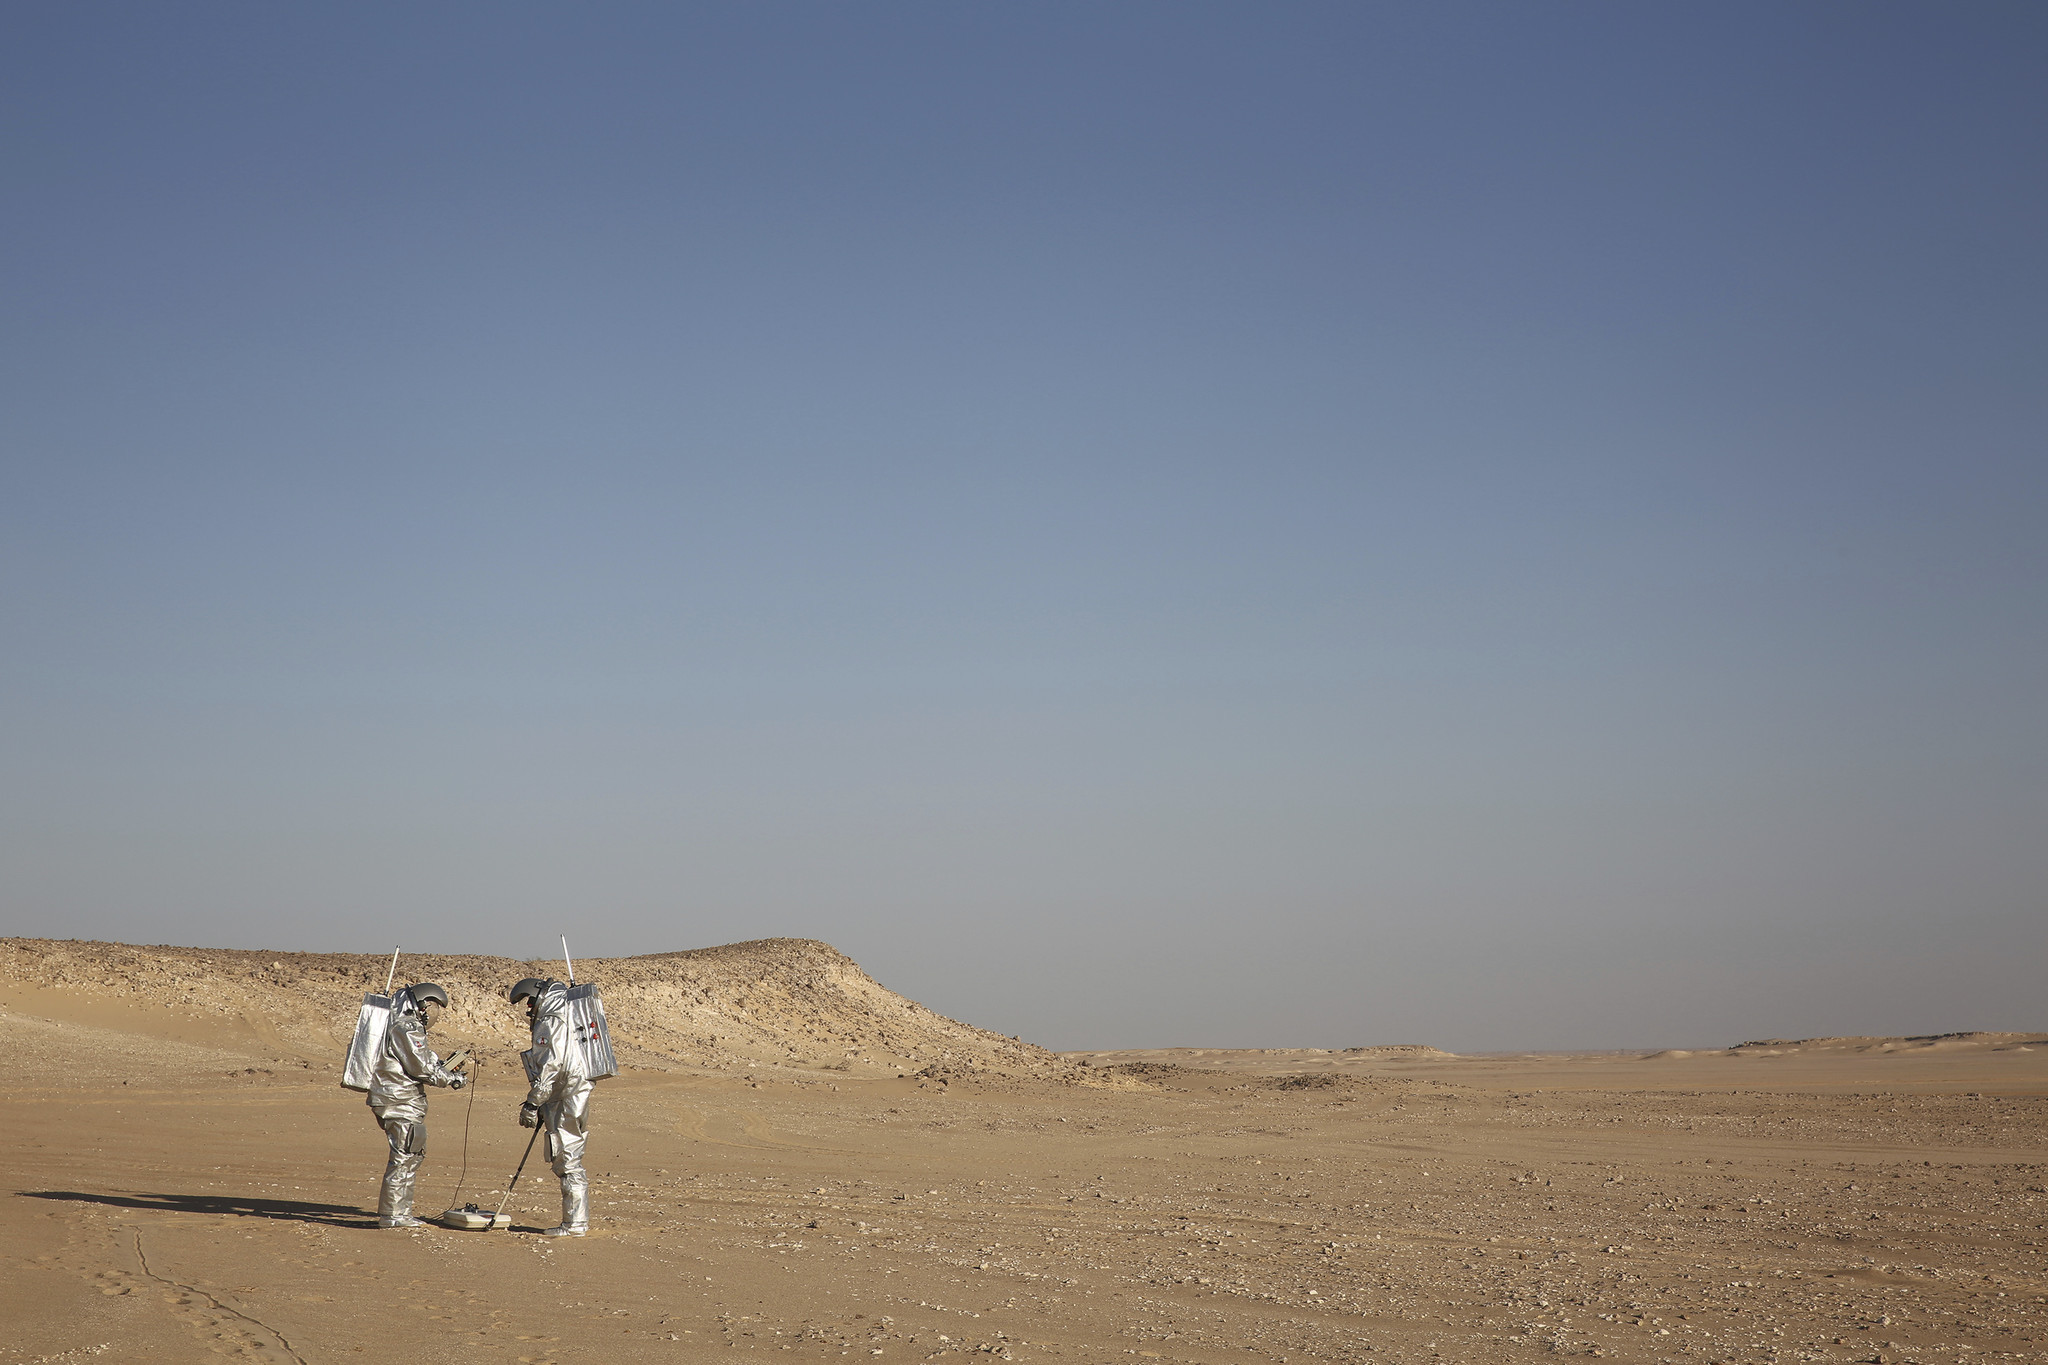 Mars on Earth: Scientists in spacesuits conduct simulation ...